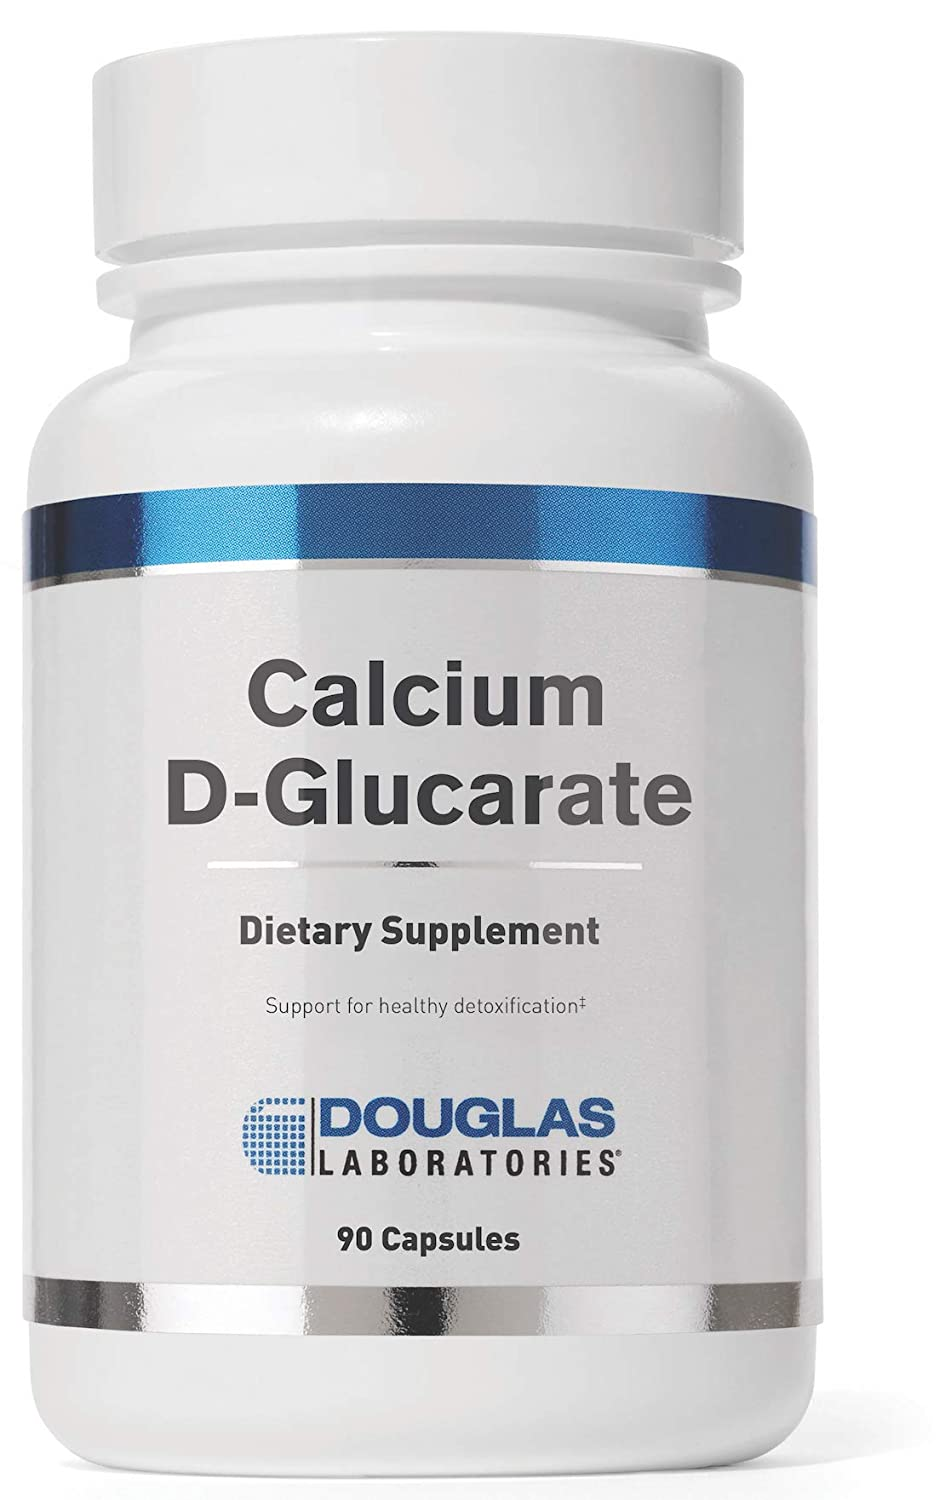 Douglas Laboratories – Calcium-D-Glucarate 500 mg. – Support Against Environmental Toxins and Excess Steroid Hormones* – 90 Capsules